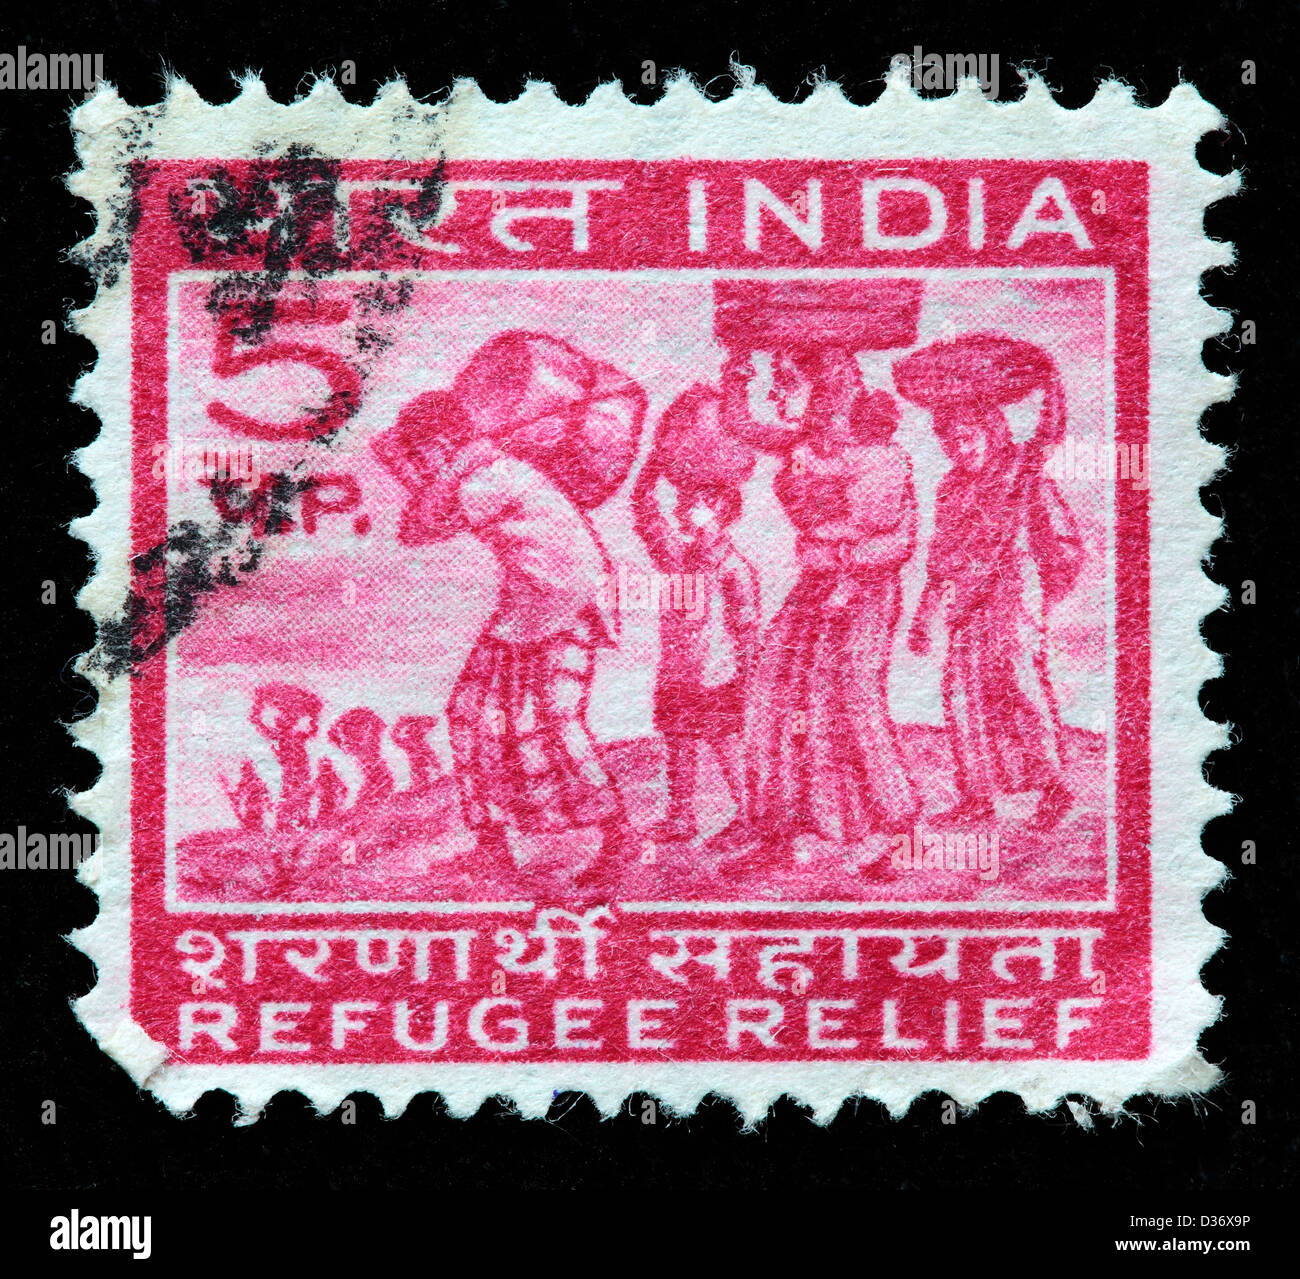 Refugee Relief, refugees from East Pakistan, postage stamp, India, 1971 - Stock Image